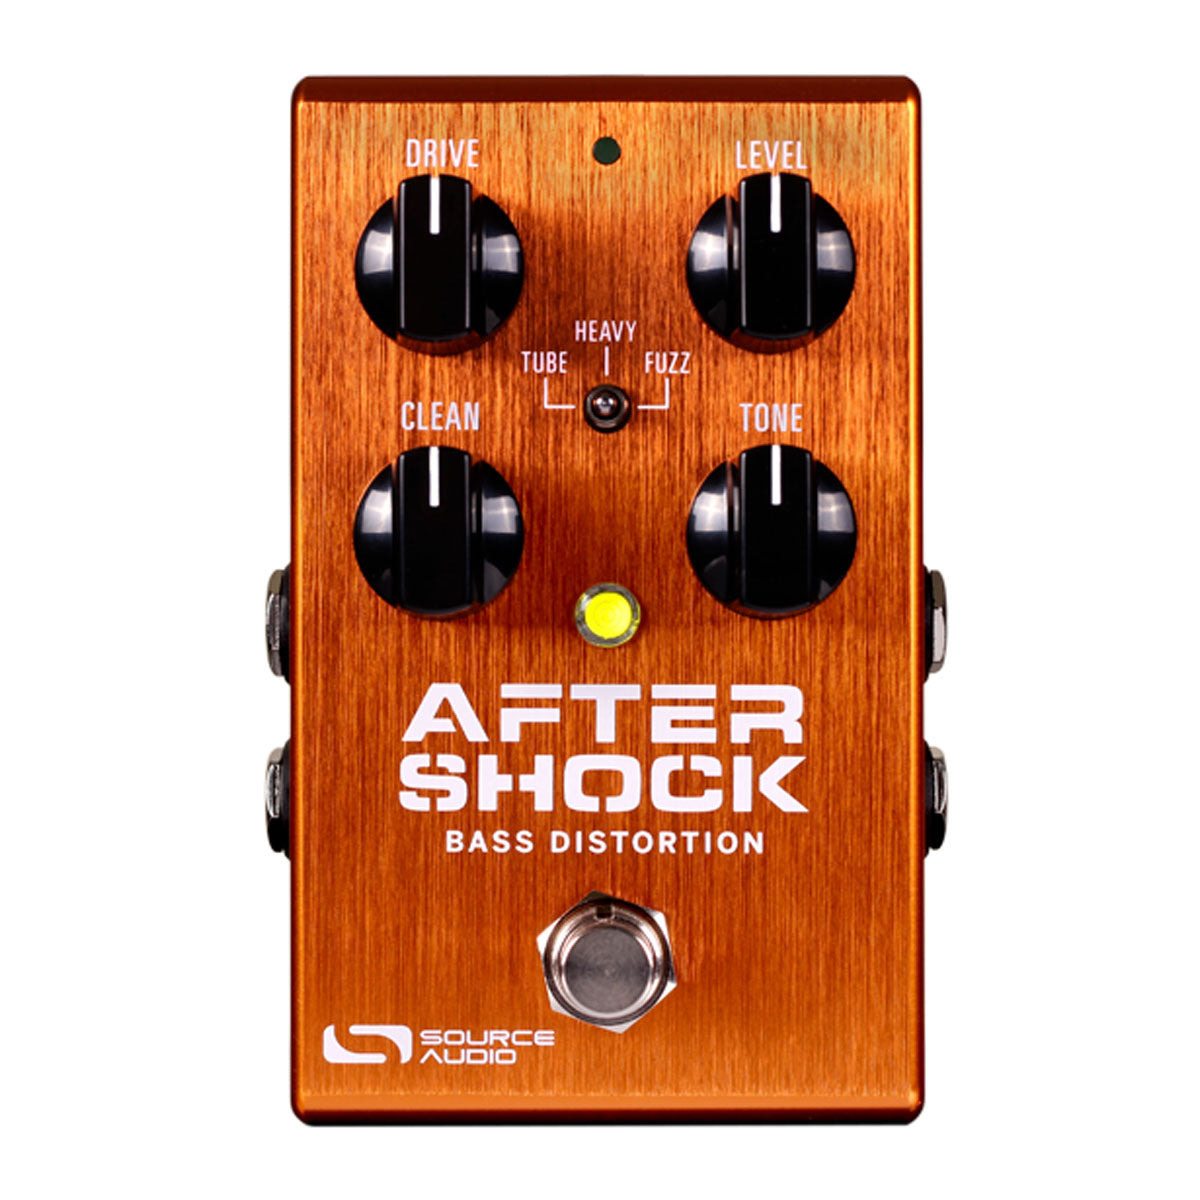 Source Audio One Series AfterShock Bass Distortion Effects Pedal